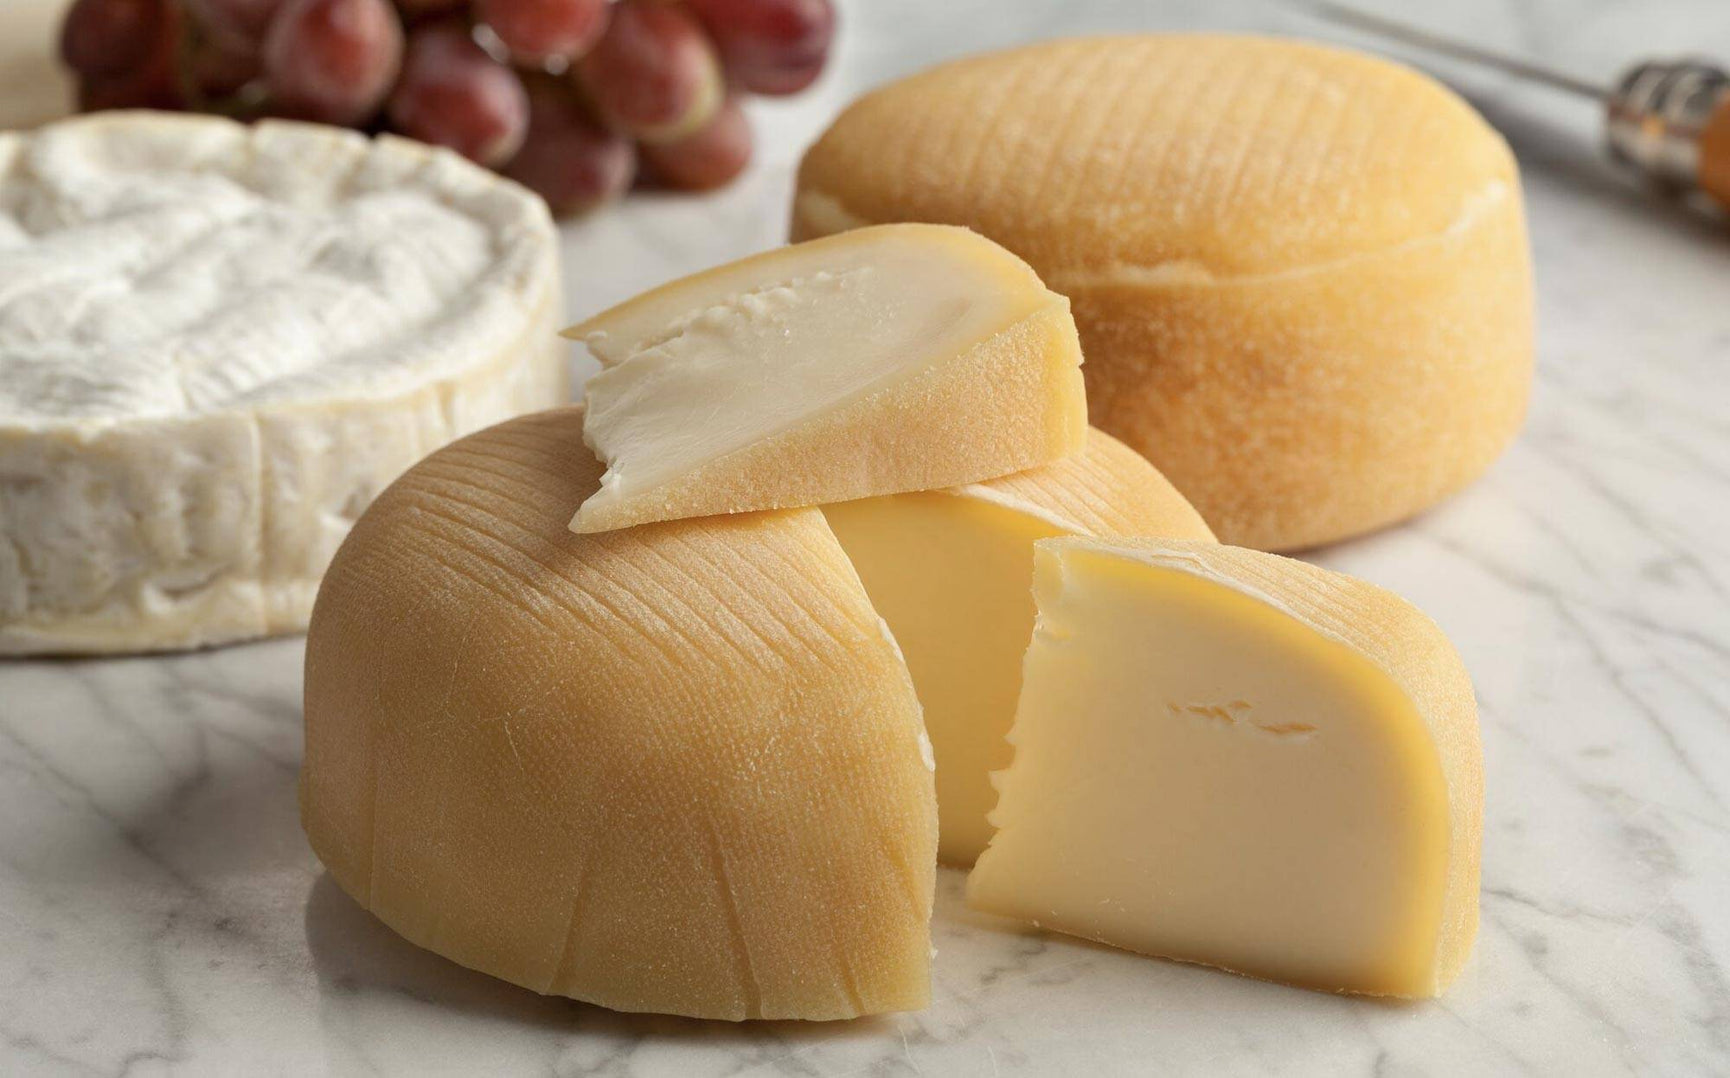 Learn About The Cheese Making Process | How to Make Cheese